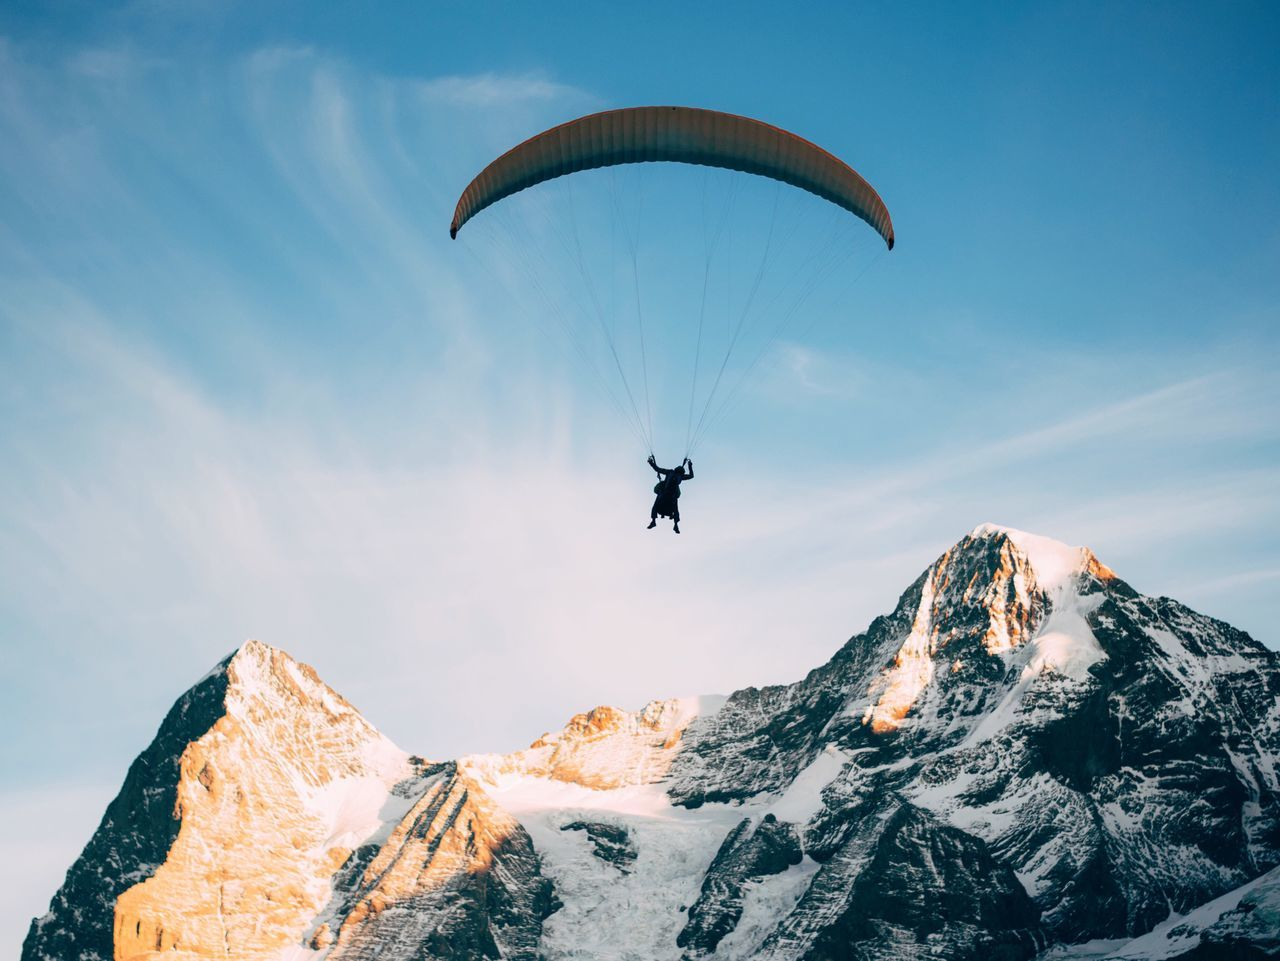 Paragliding Adventure Mountain Extreme Sports One Person Mountain Range Unrecognizable Person Flying Parachute Leisure Activity Real People Exhilaration Beauty In Nature Transportation Nature Full Length Outdoors Low Angle View Sport Day Sky Switzerland VSCO Fresh On Market 2017